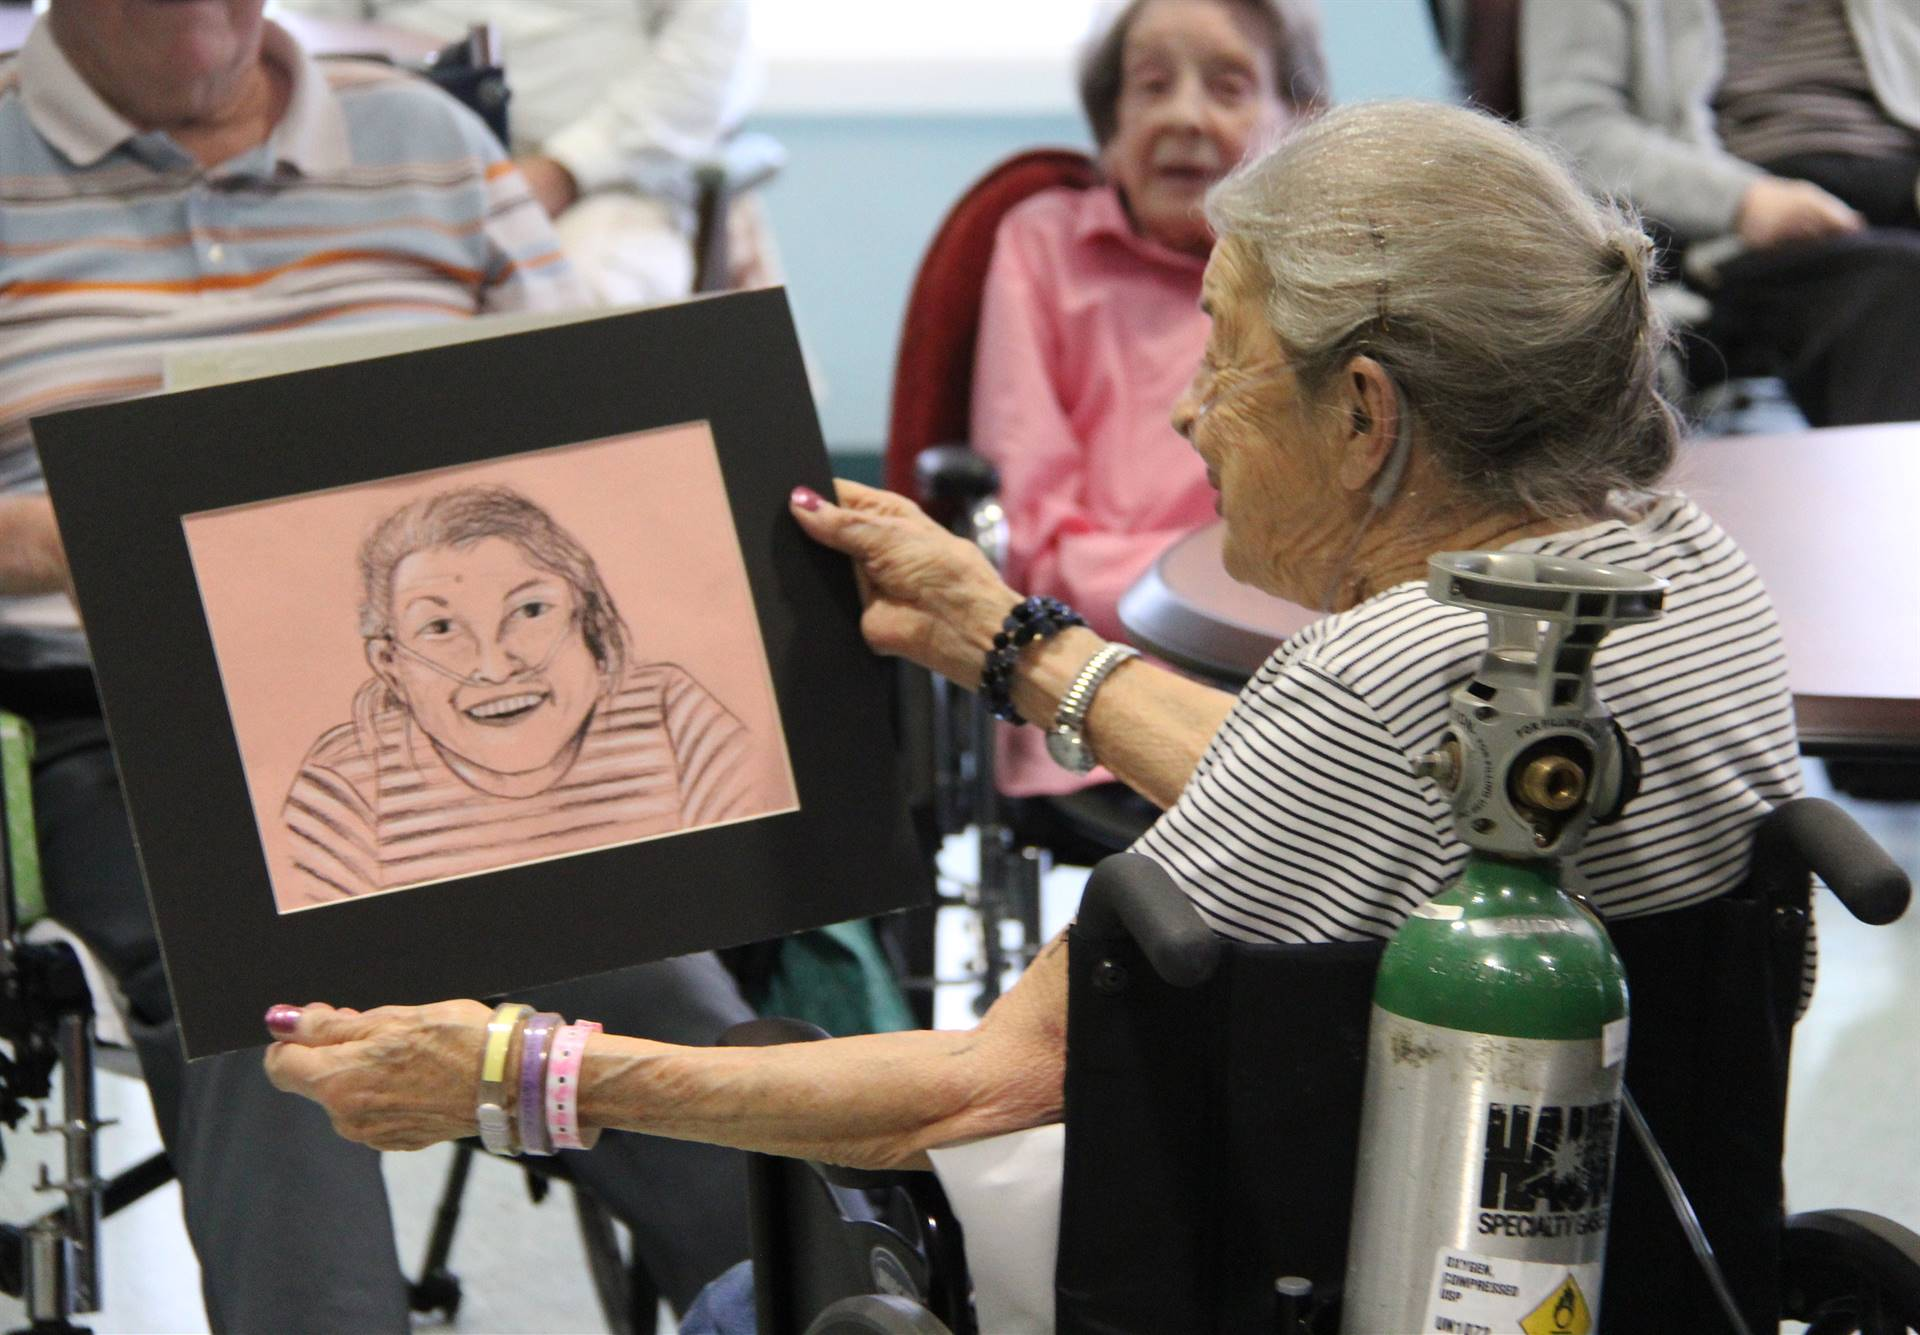 woman smiling looking at drawing of herself